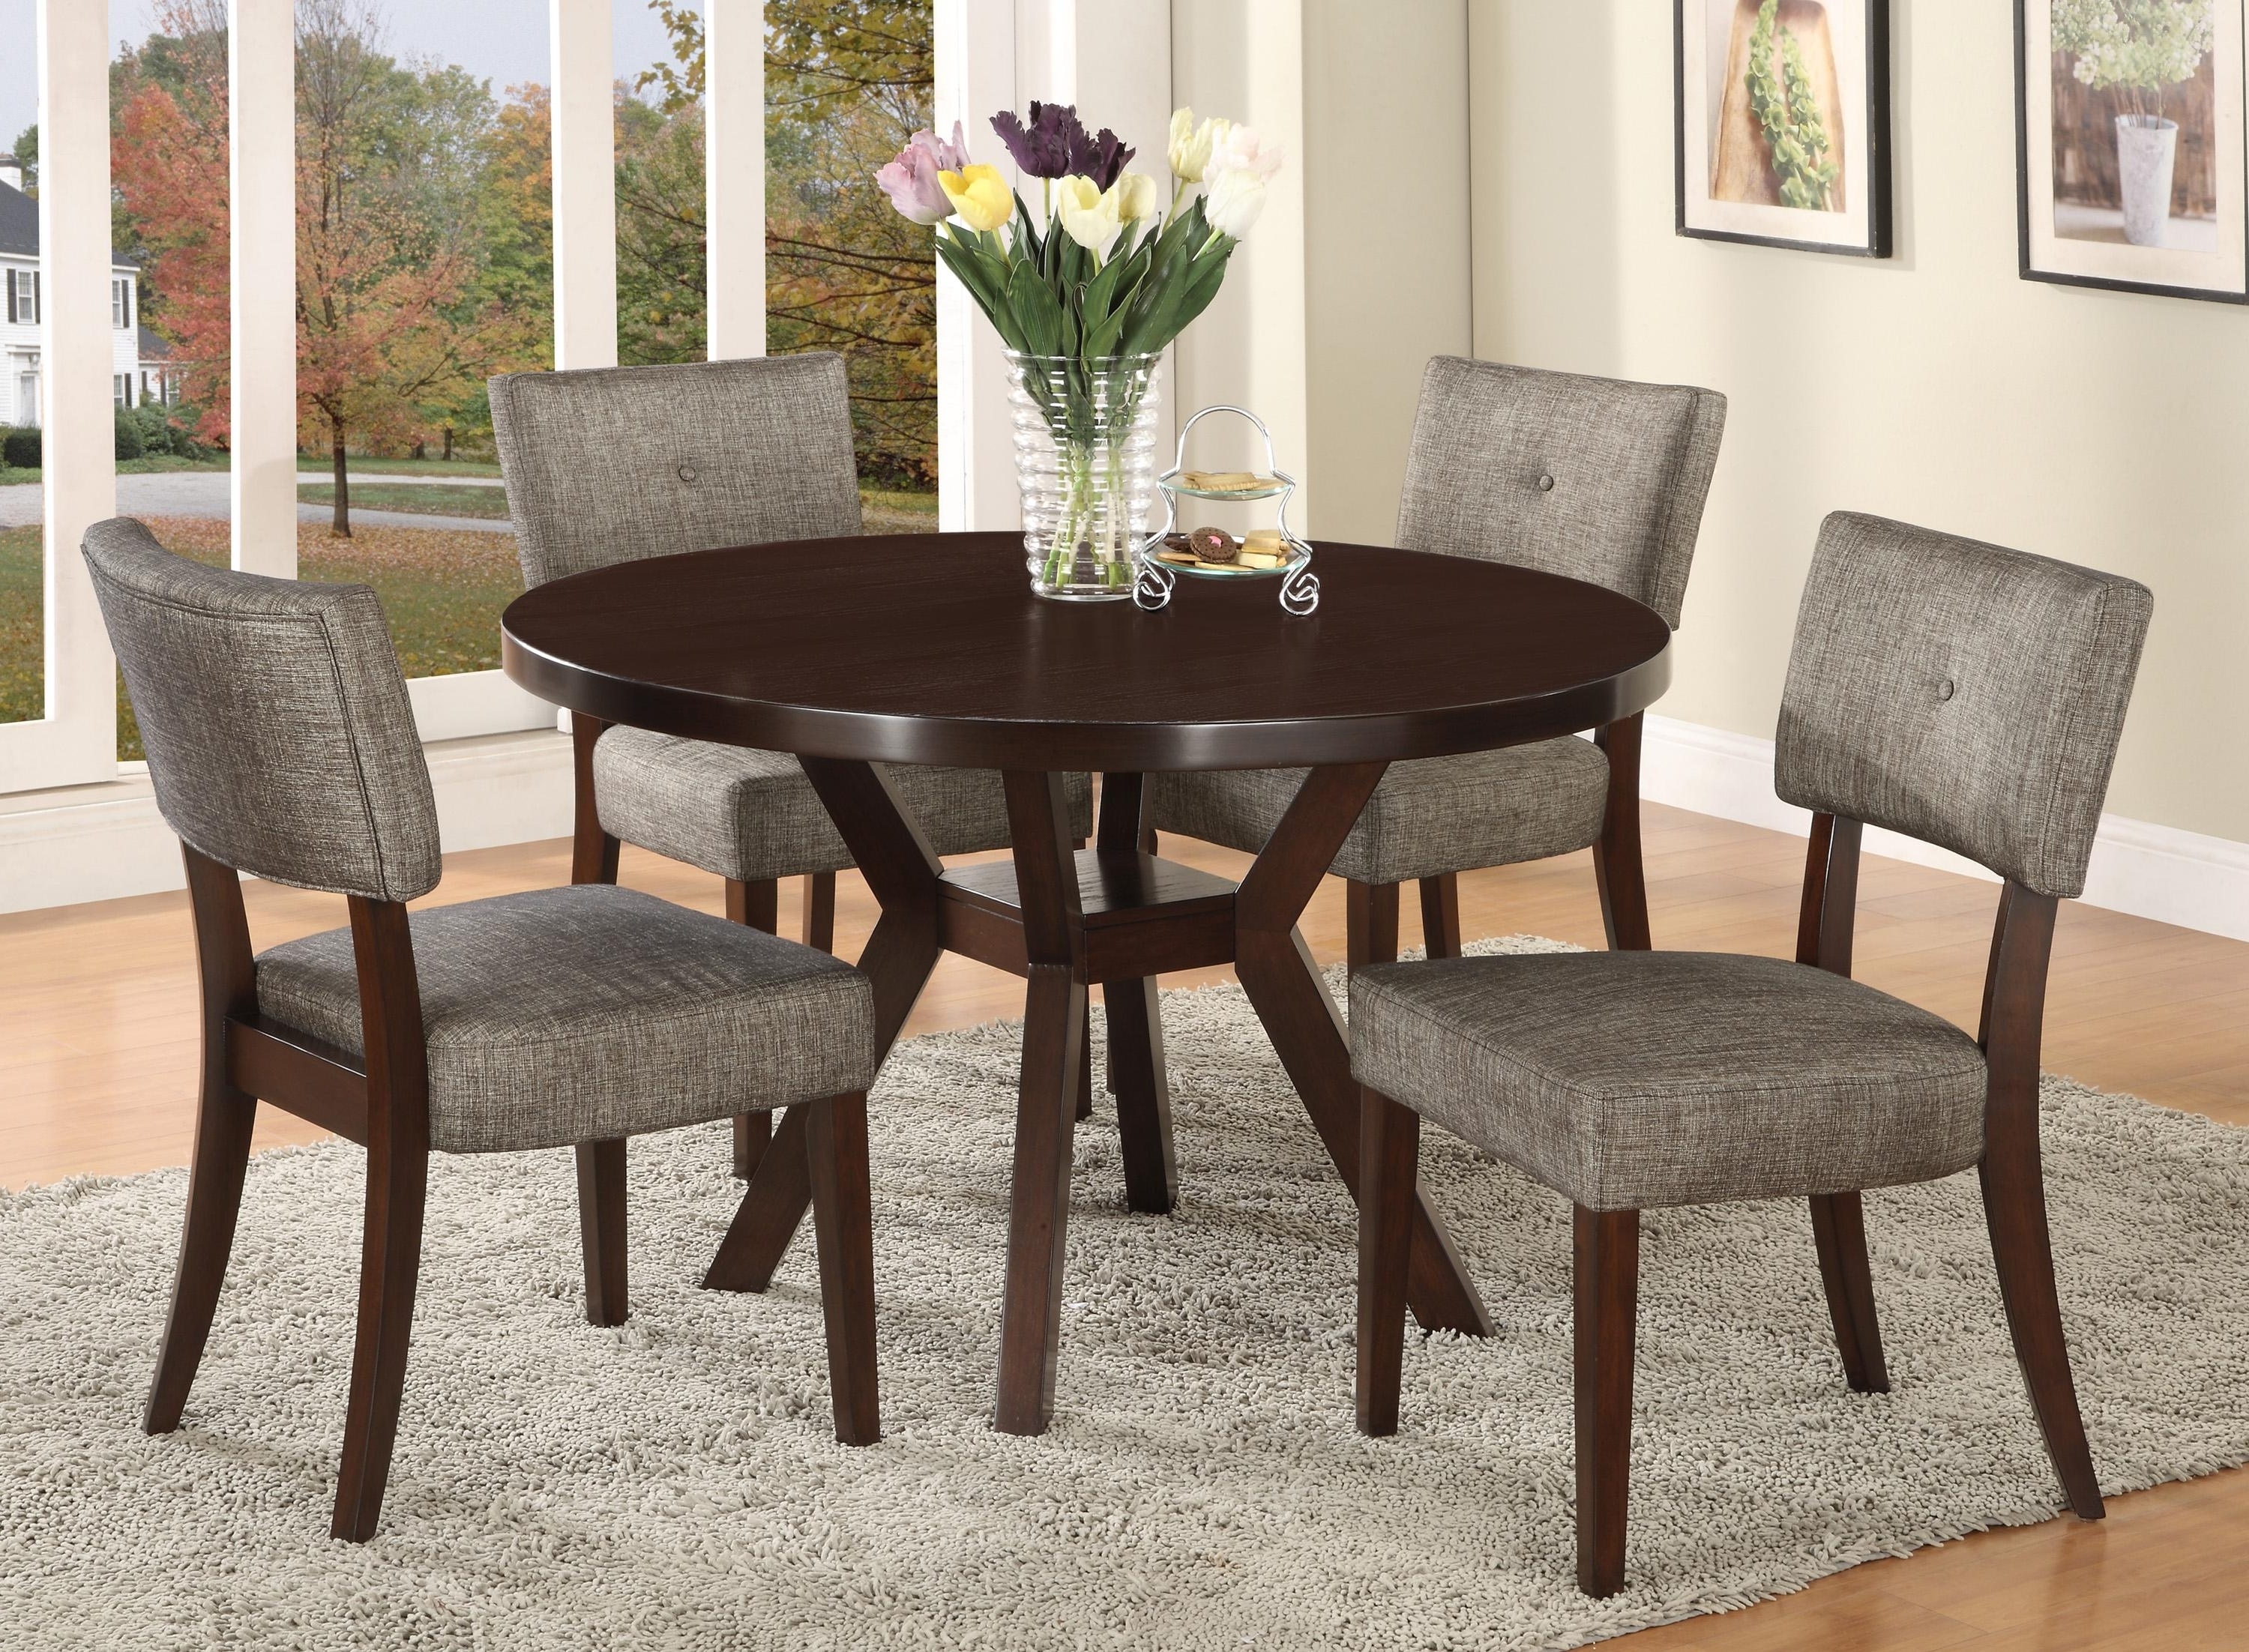 Dunk & Bright Pertaining To Dining Sets (View 11 of 25)